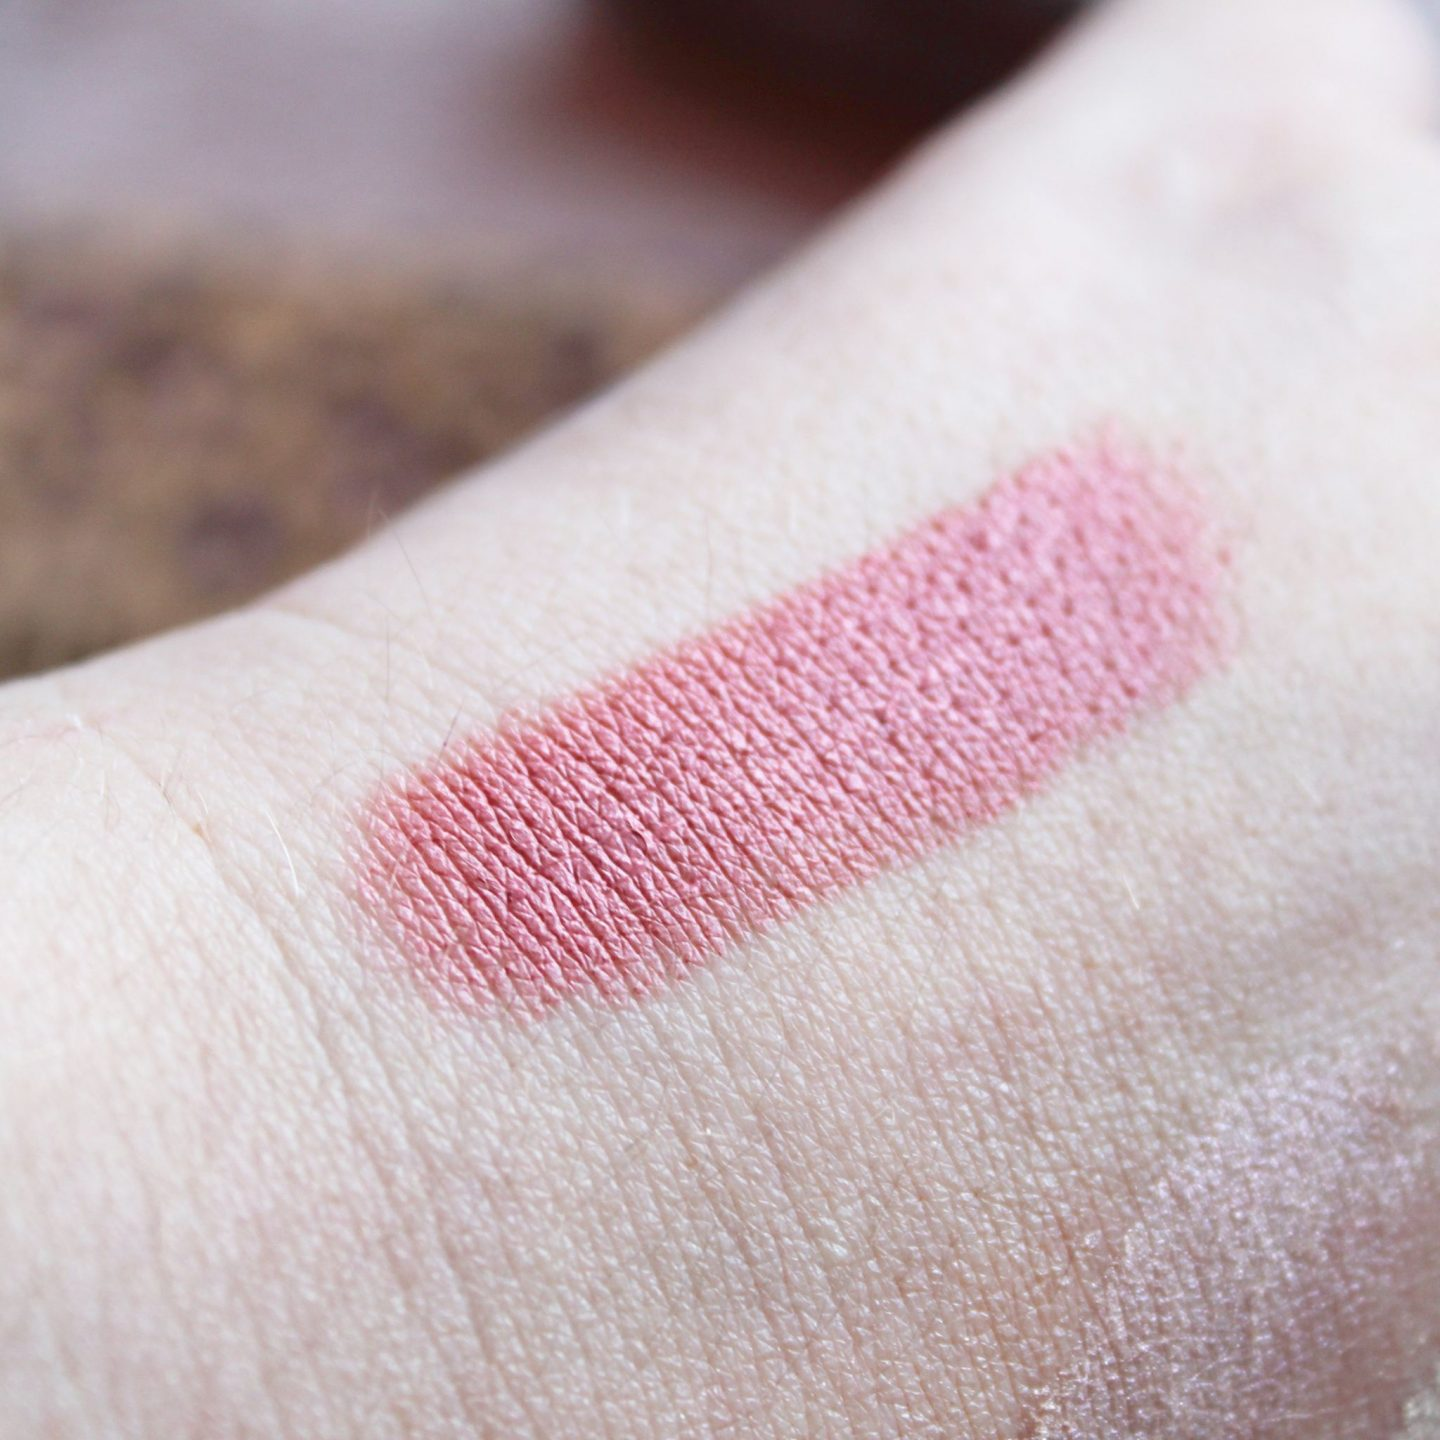 Urban Decay Vice Lipstick in Weirdo